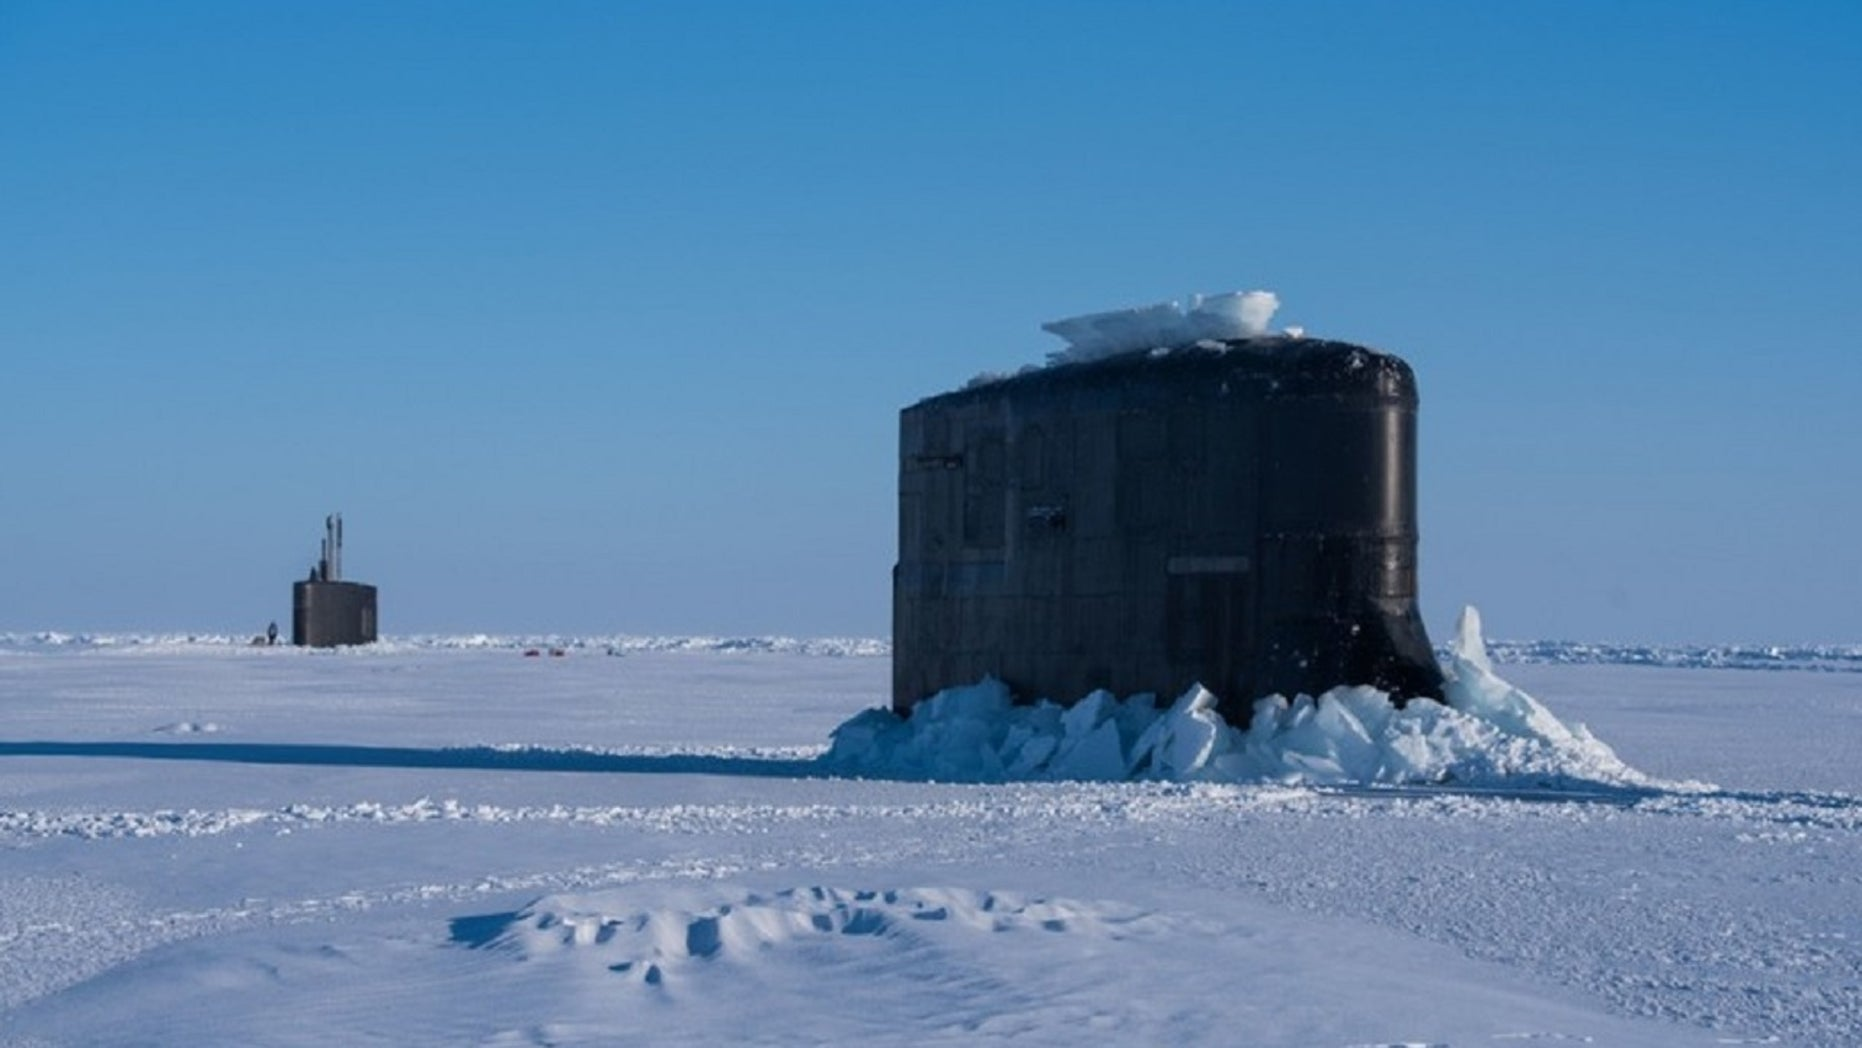 The submarine USS Connecticut and fast-attack submarine USS Hartford breakthrough the ice in support of Ice Exercise 2018 near Ice Camp Skate in the Arctic Circle, March 10, 2018.